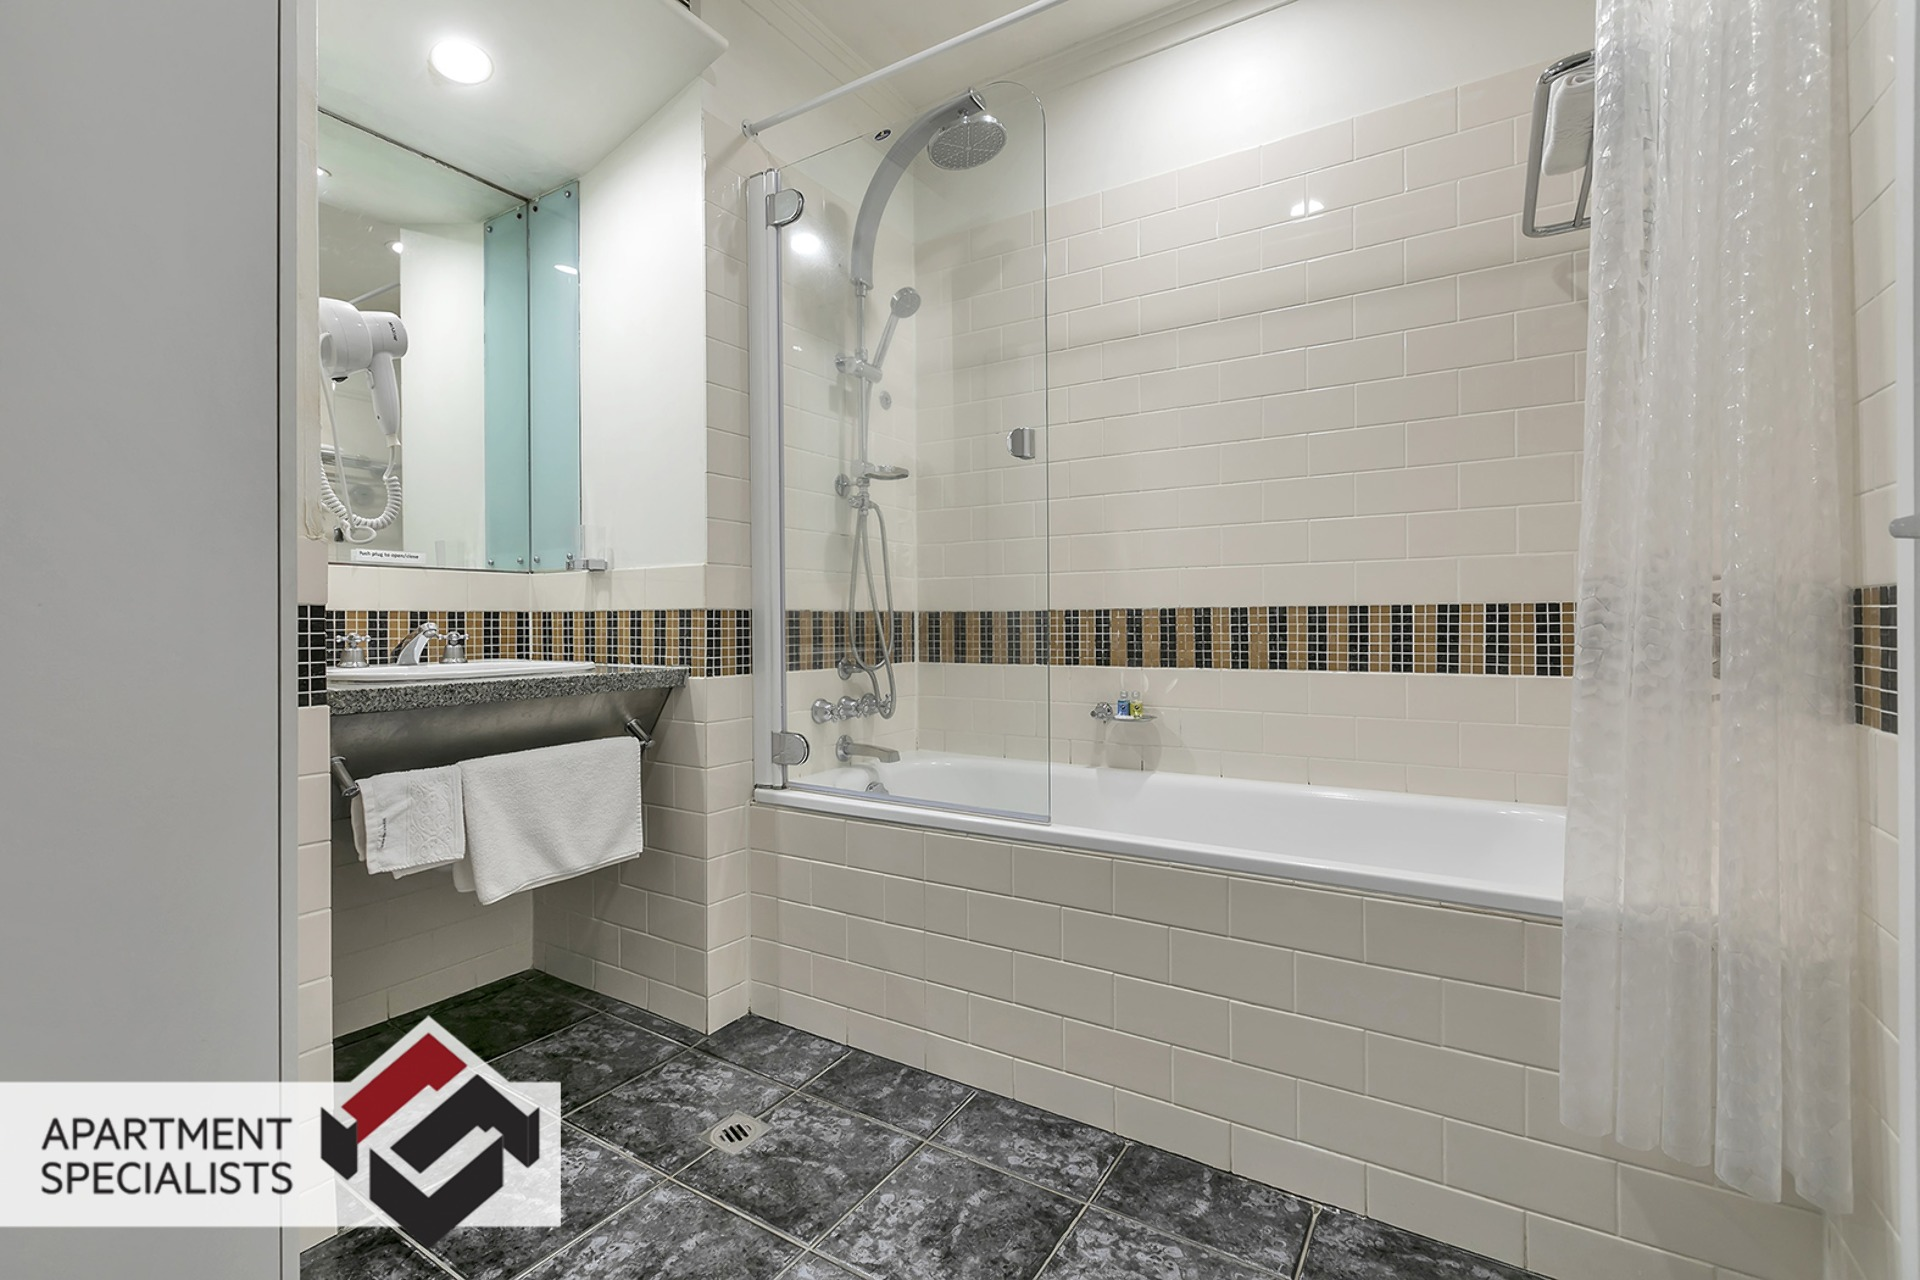 1 | 35 Hobson Street, City Centre | Apartment Specialists